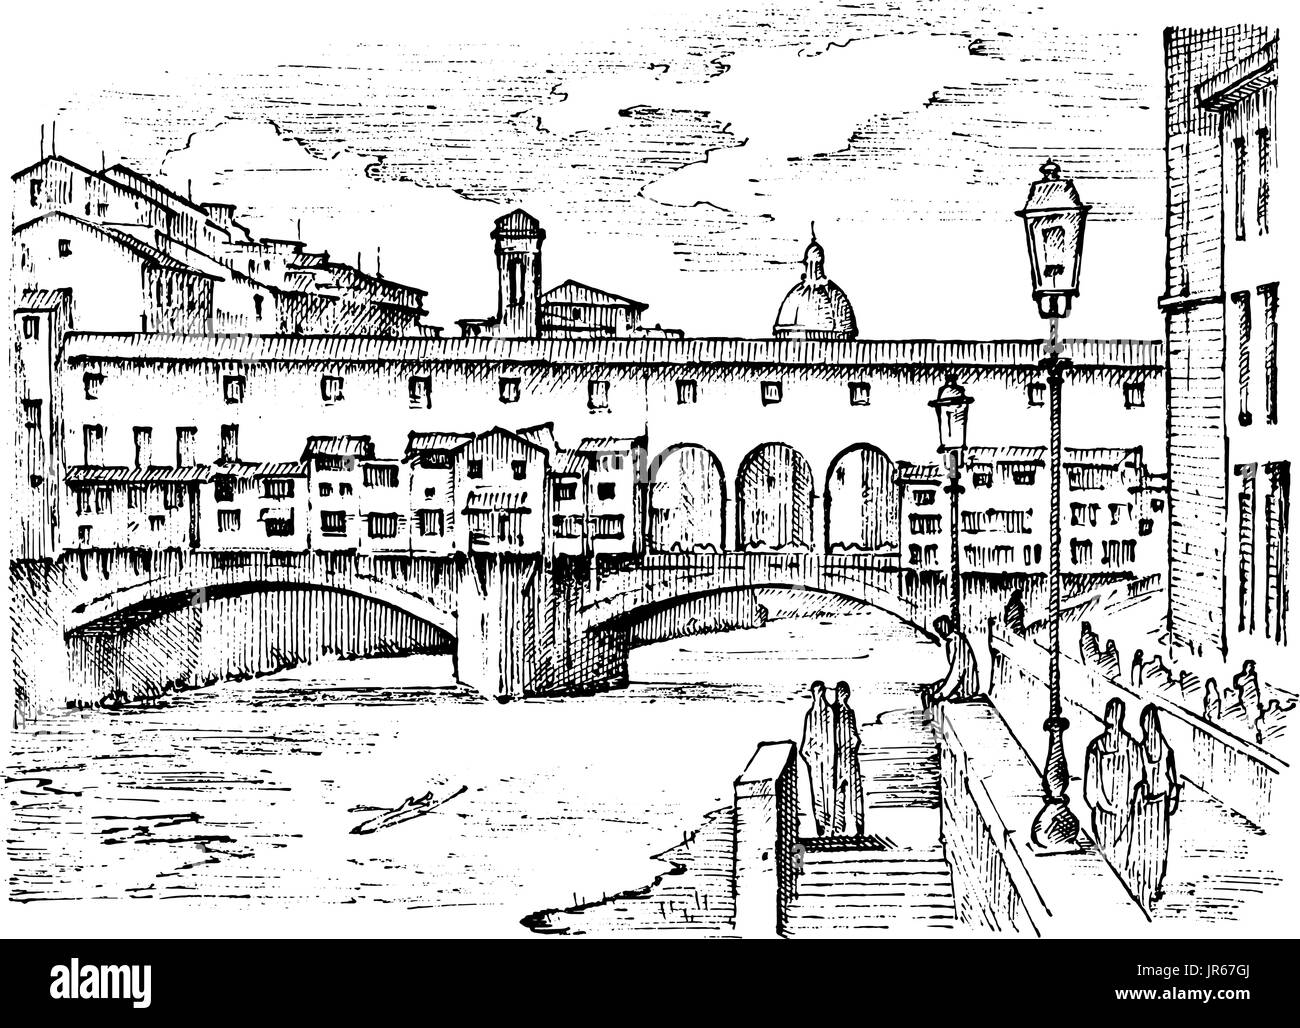 landscape in European town Florence in Italy. engraved hand drawn in old sketch and vintage style. historical architecture with buildings, perspective view. Travel postcard. Ponte Vecchio bridge. - Stock Image